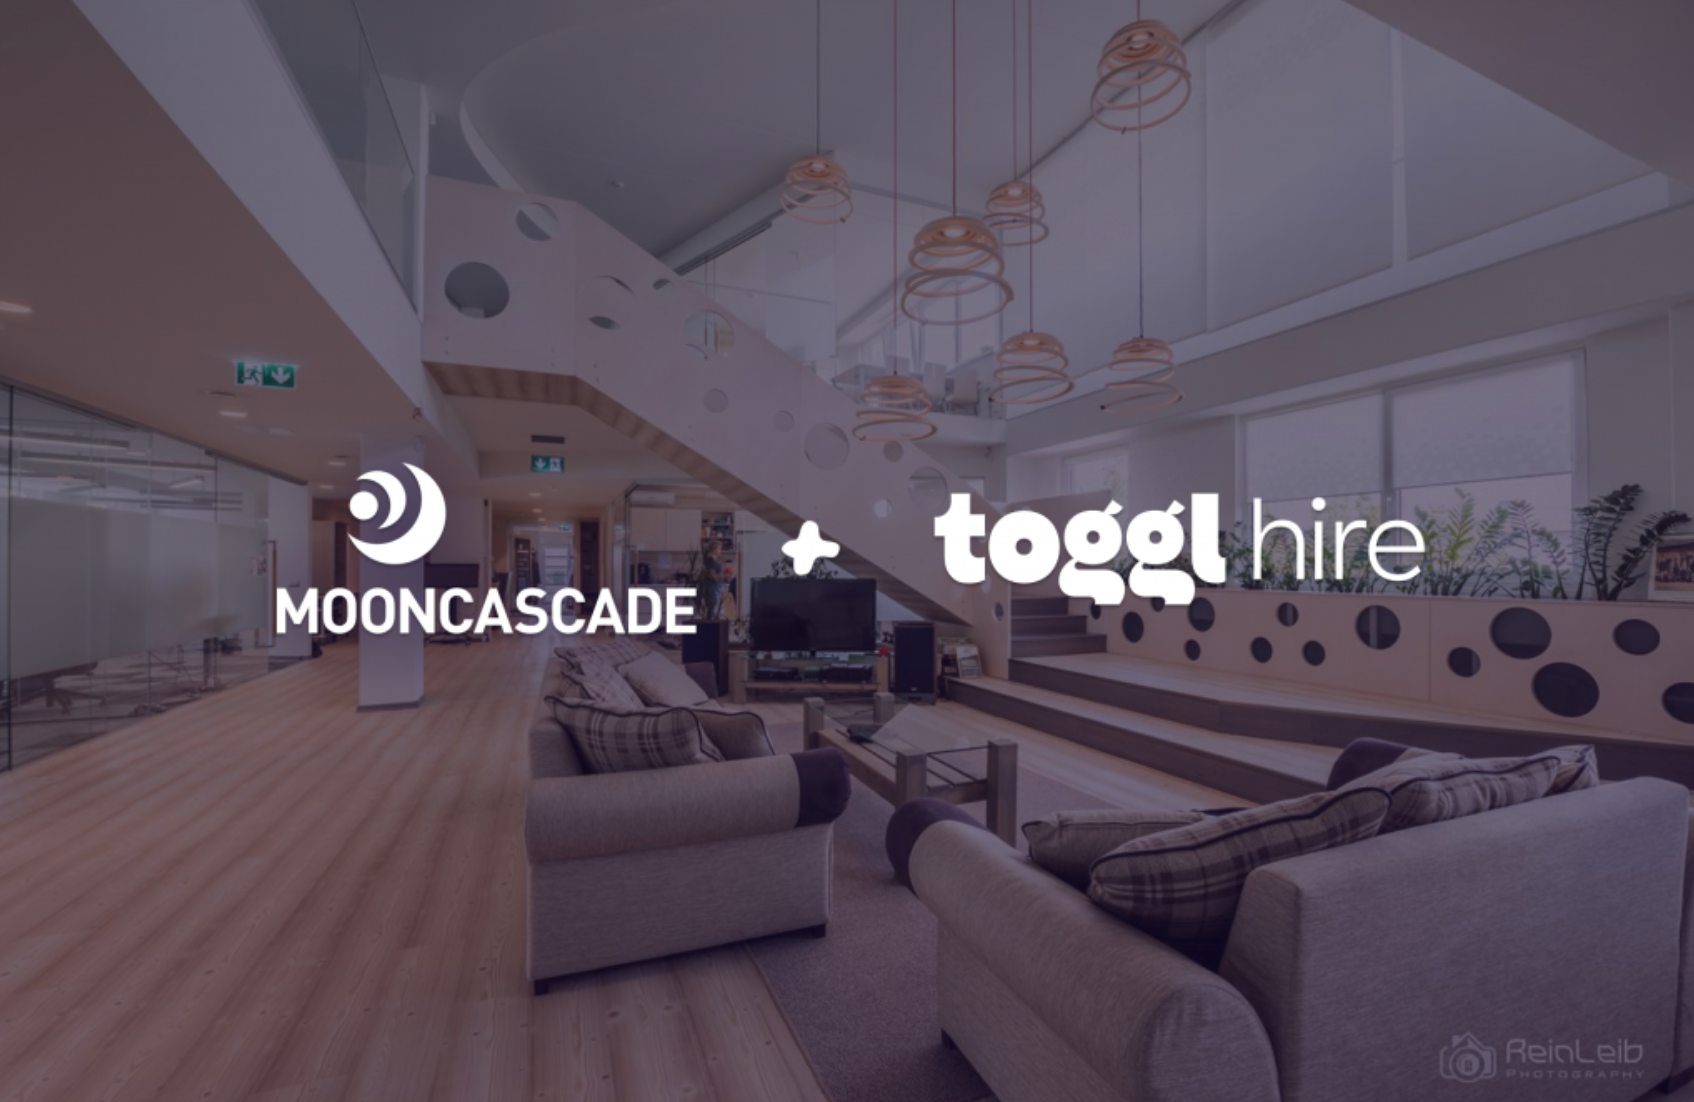 Mooncascade narrowed down 246 candidates to the top 6 in one day, using Toggl Hire.